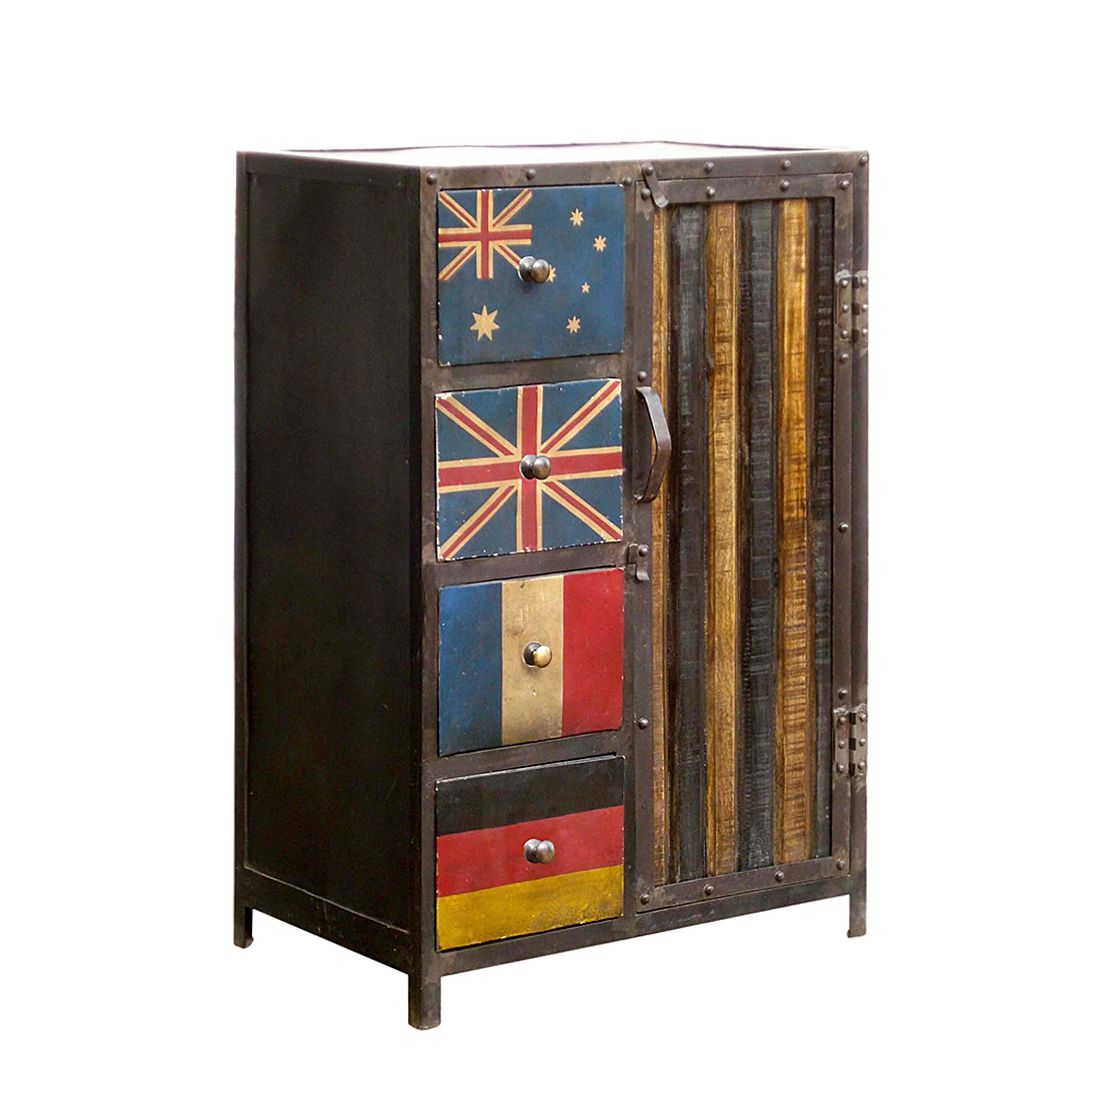 Commode Bandera II, ars manufacti